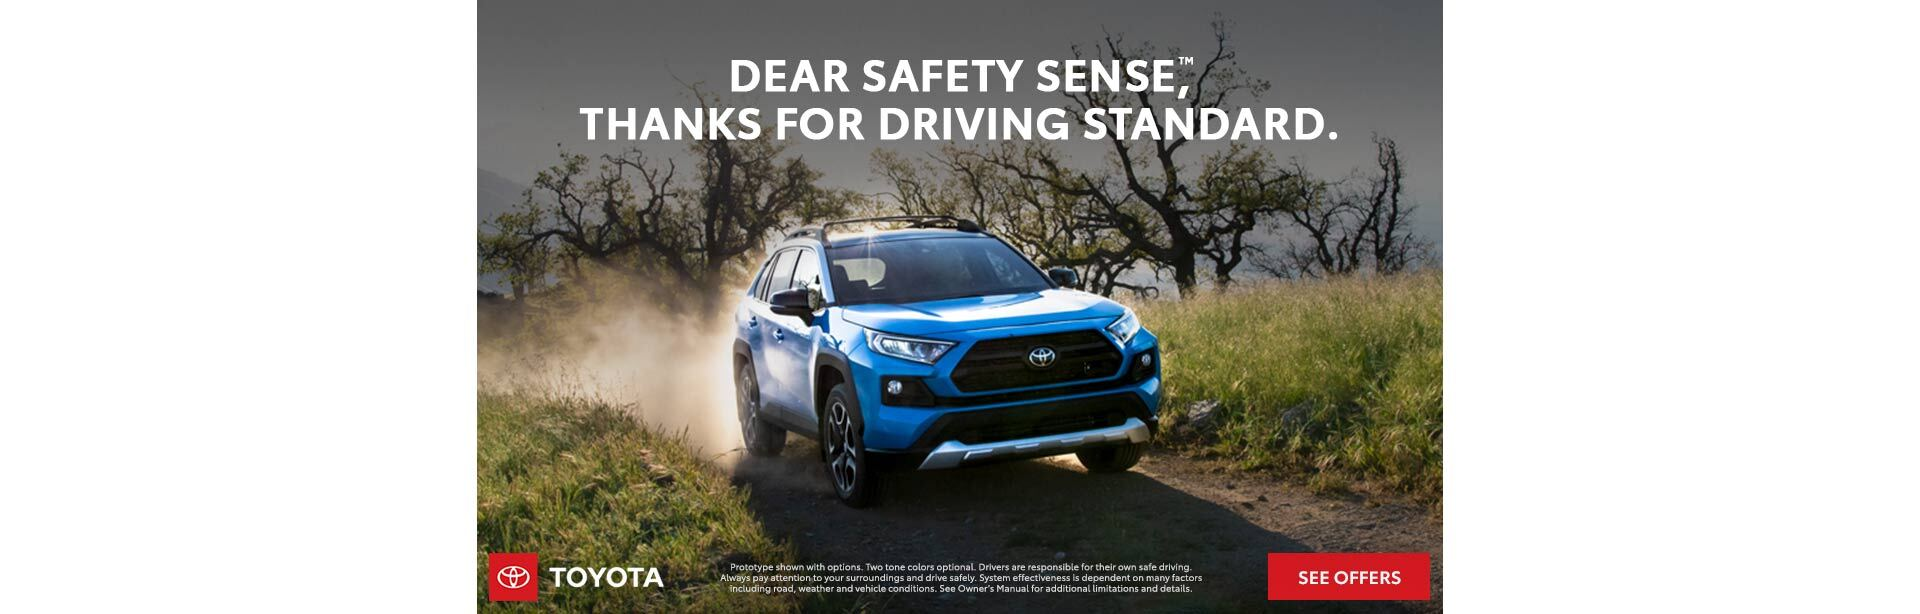 2019 July NYR Dealer Safety Sense